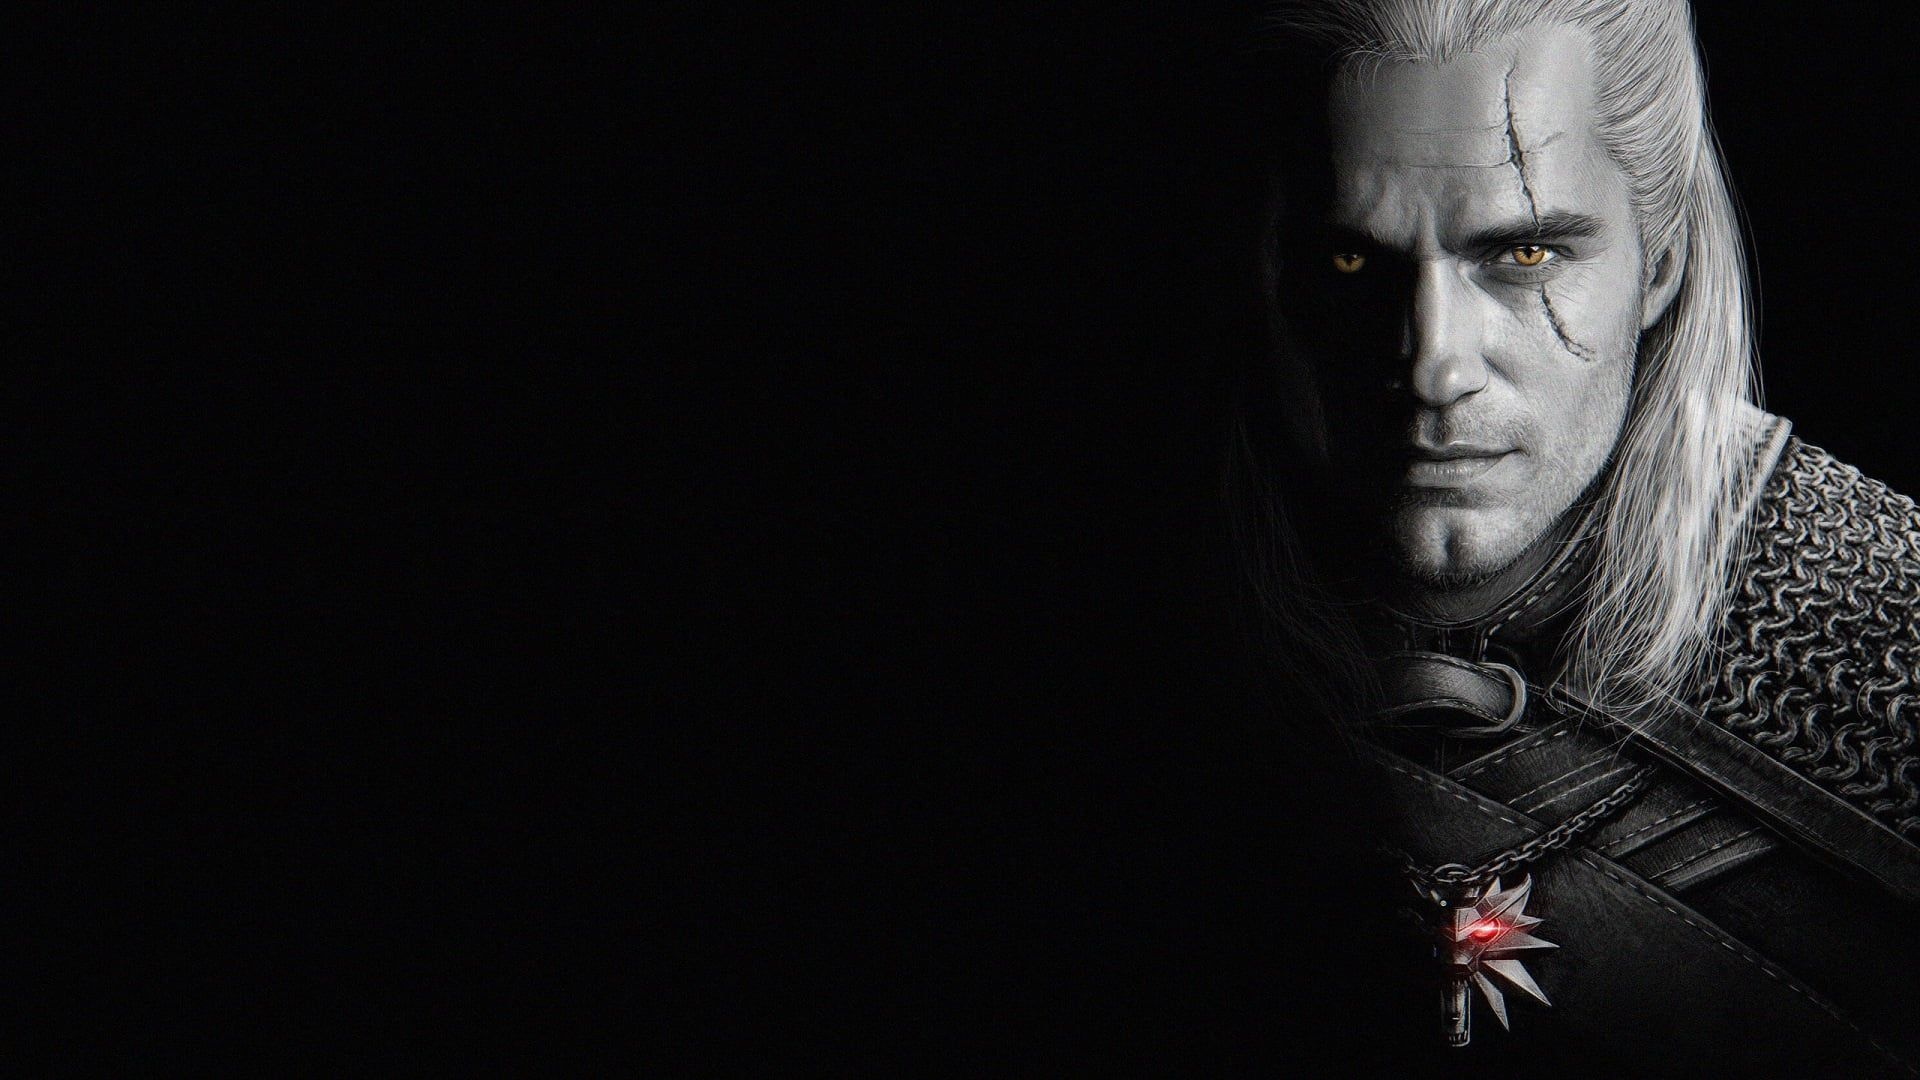 Look Male Scar The Witcher Black Background 2019 1080p Wallpaper Hdwallpaper Desktop The Witcher Black Wallpaper Henry Cavill